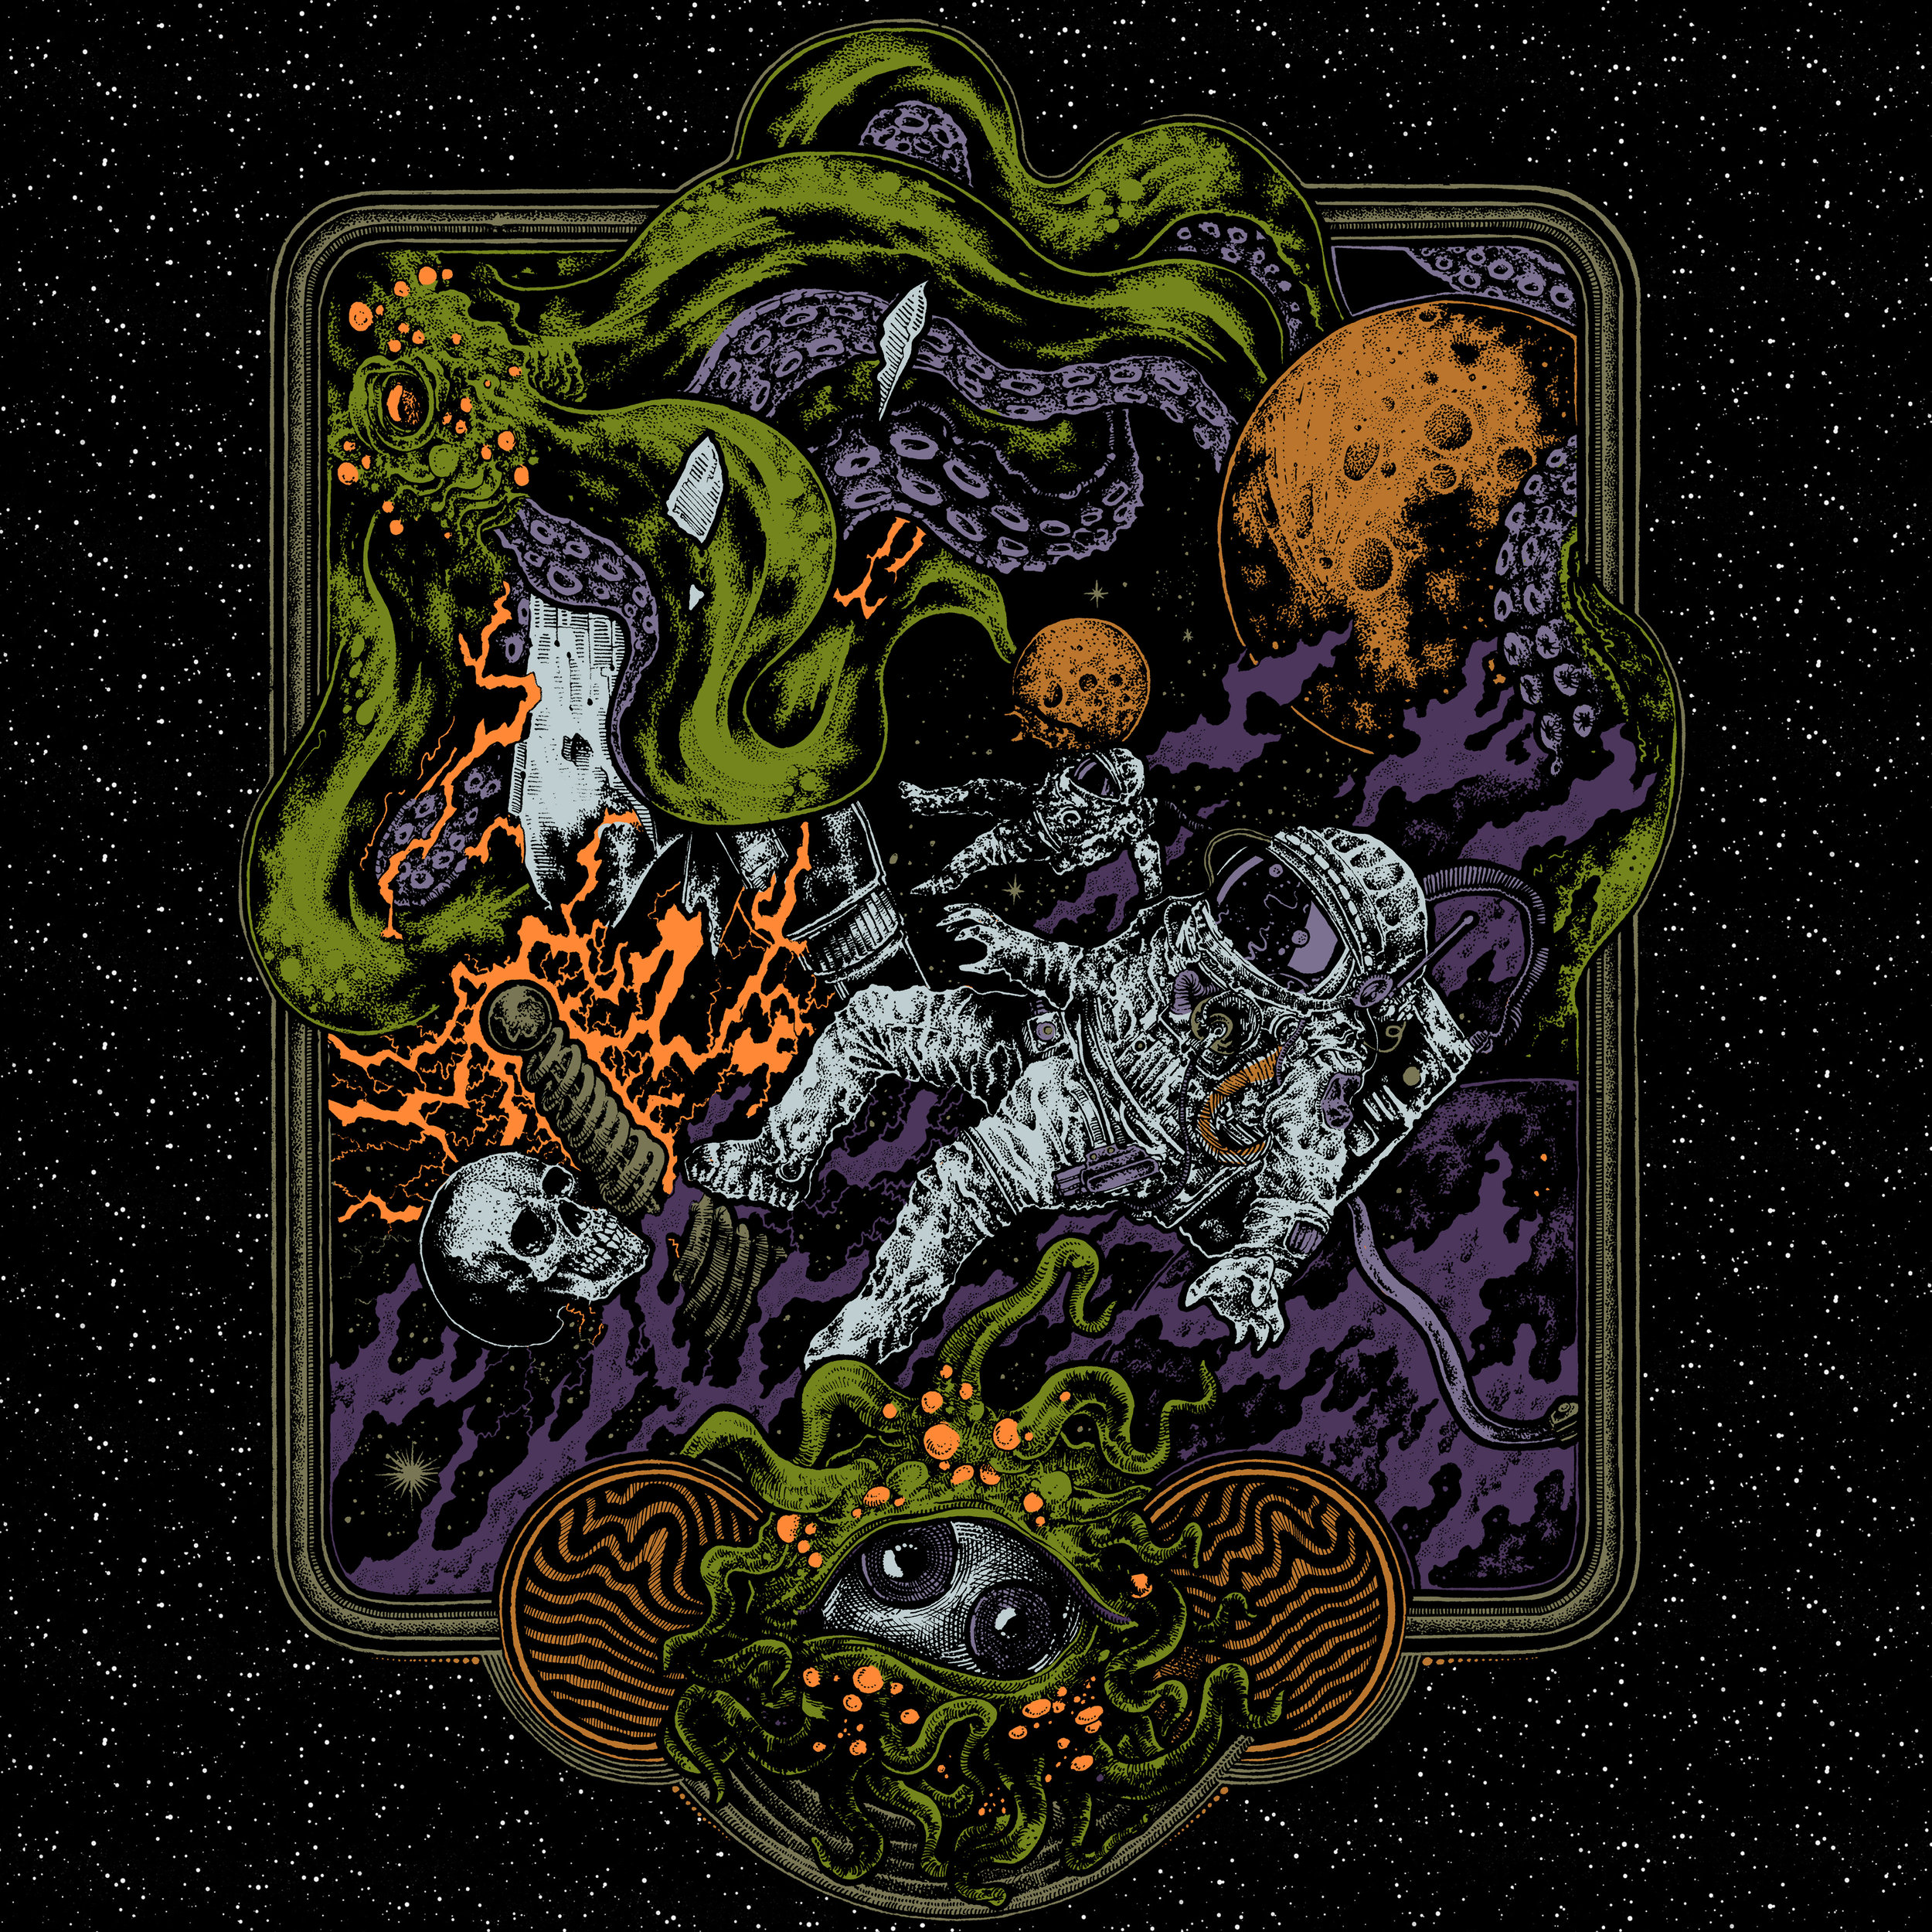 Metal Temple - Album Review 08/23/19This is truly a surreal experience.